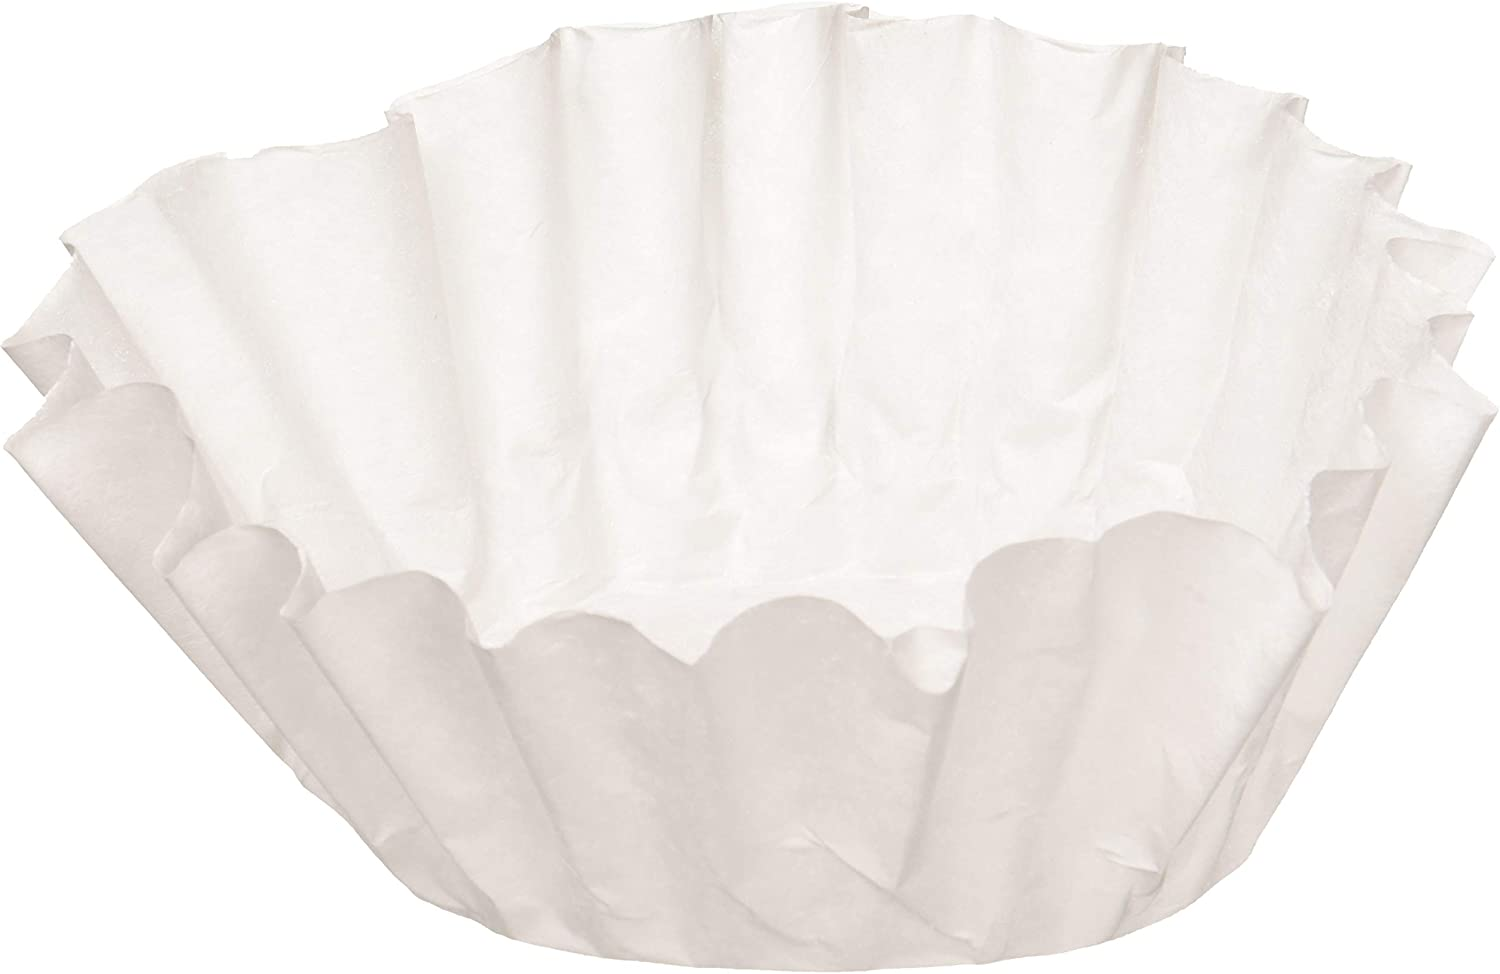 BUNN 6001 12-Cup Commercial Coffee Filters, 500-count, White 61tQrfKYCdL